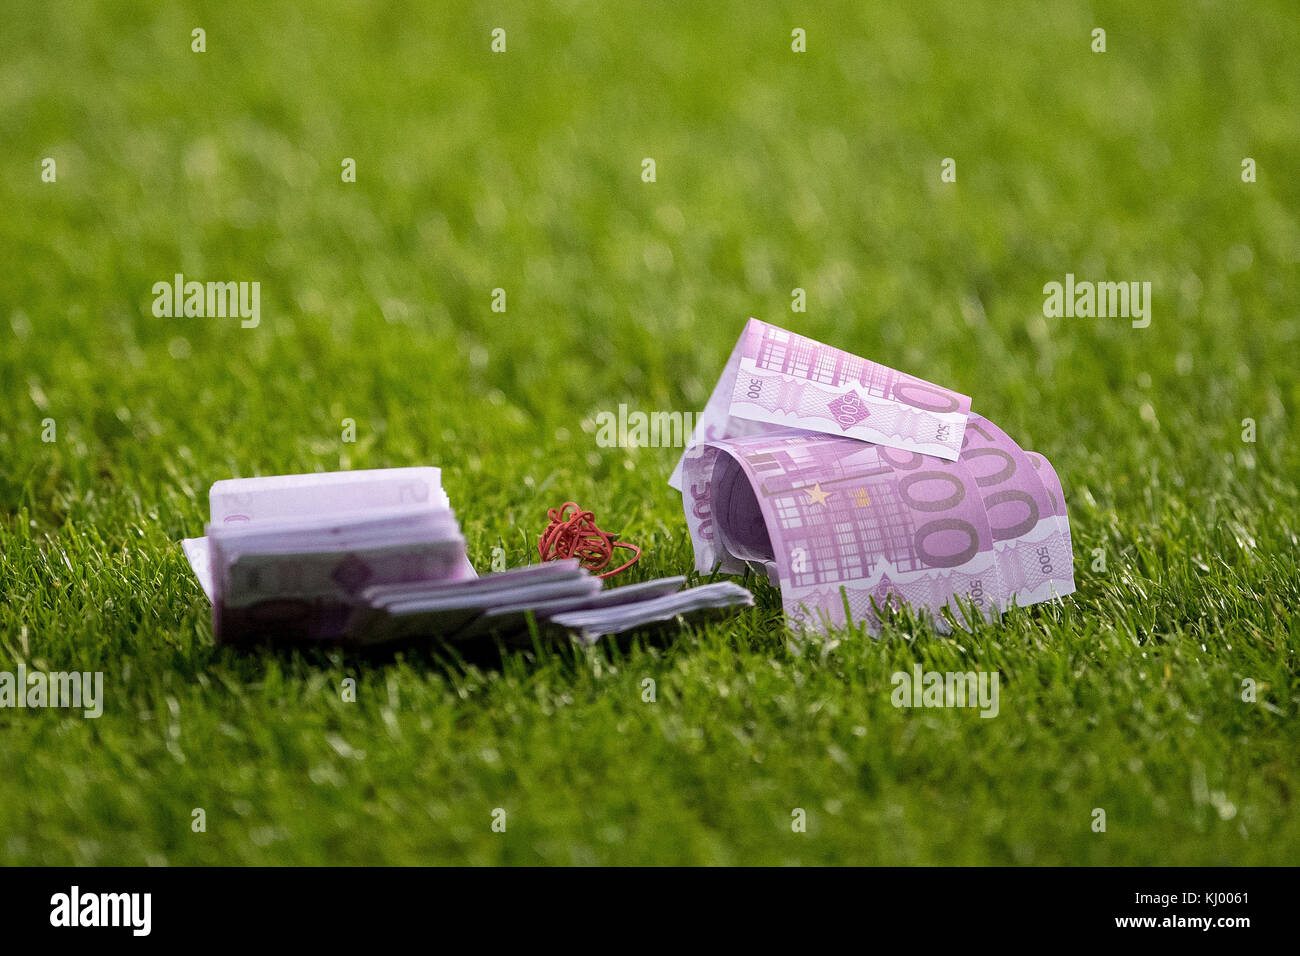 Play money, which was thrown on the pitch by FC Bayern Munich fans, lies on the grass during the Champions League - Stock Image